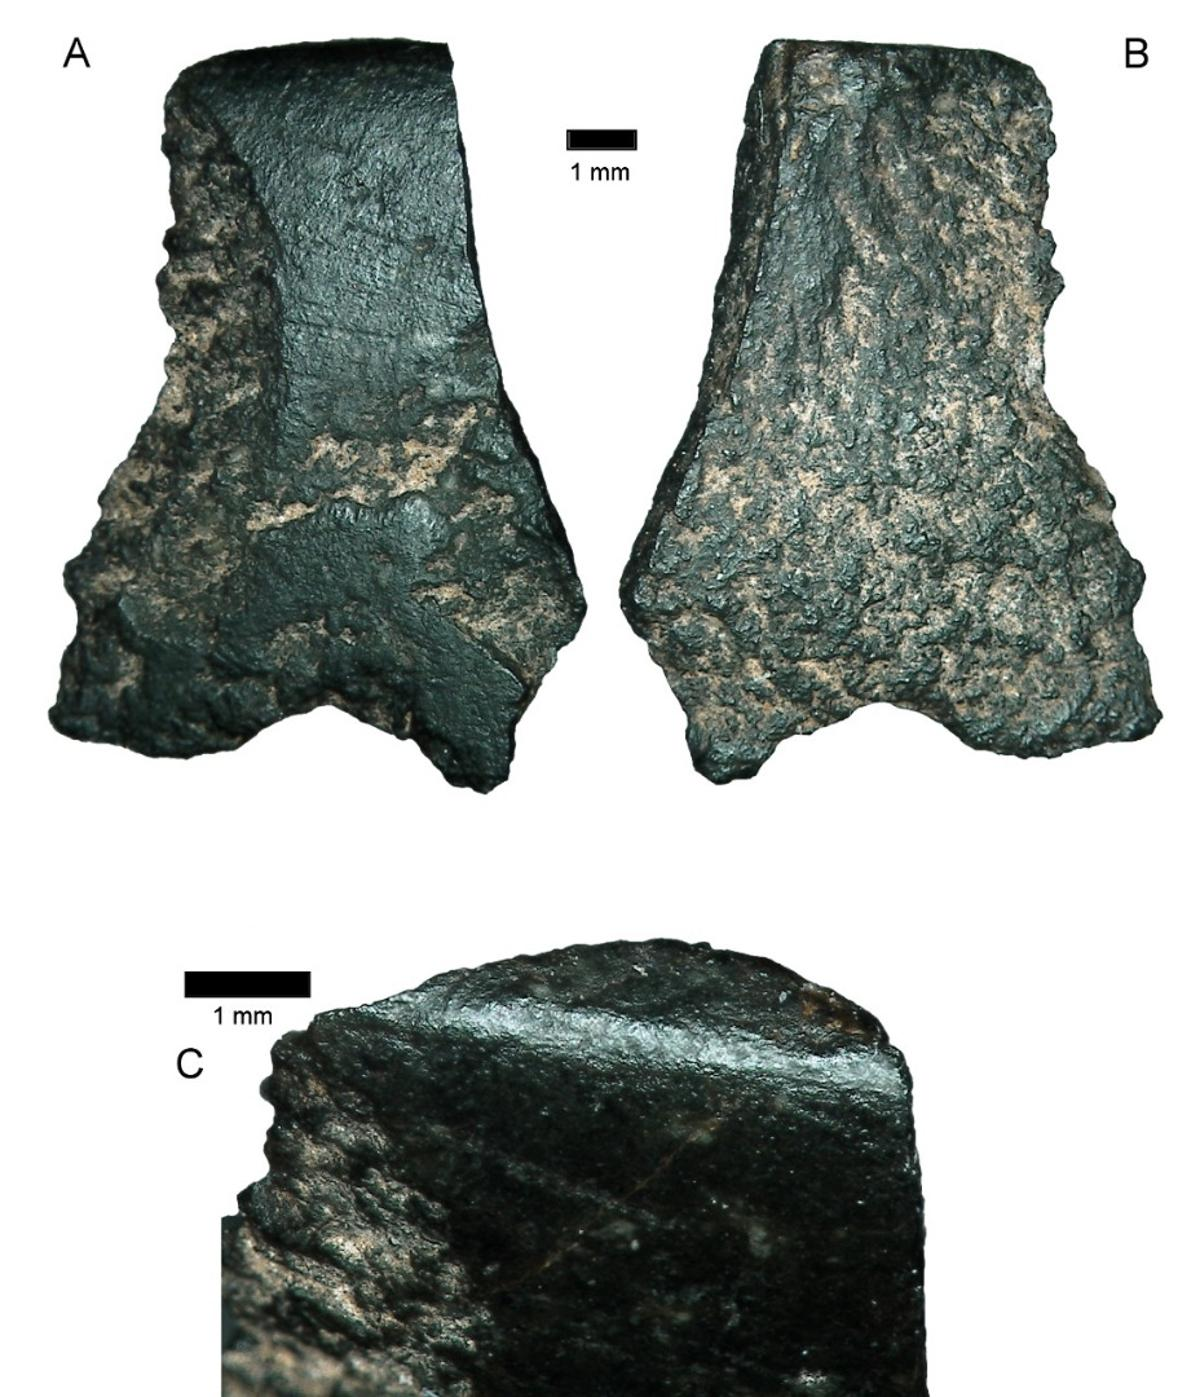 The world's oldest axe fragment, discovered in a remote region of Australia, is about the size of a thumbnail and dates back to 45,000-49,000 years ago